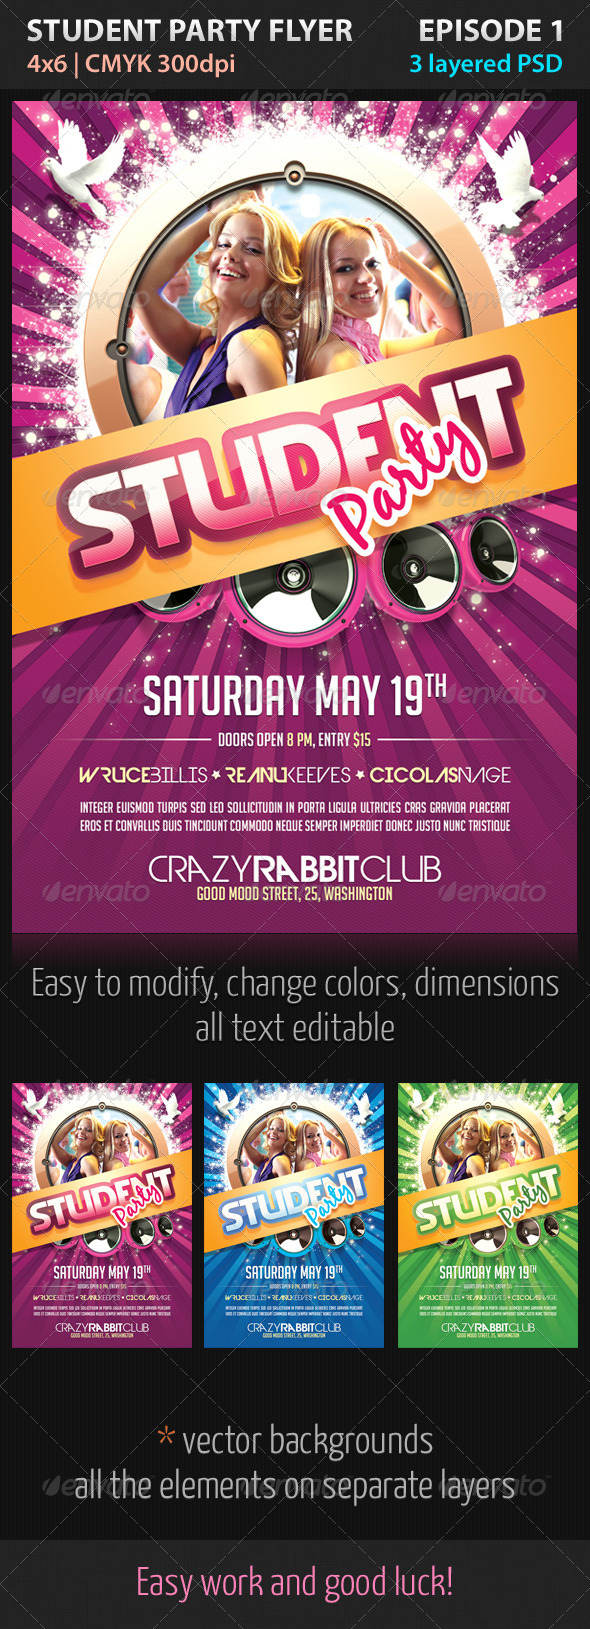 Graphicriver Student Party Flyer Episode 1